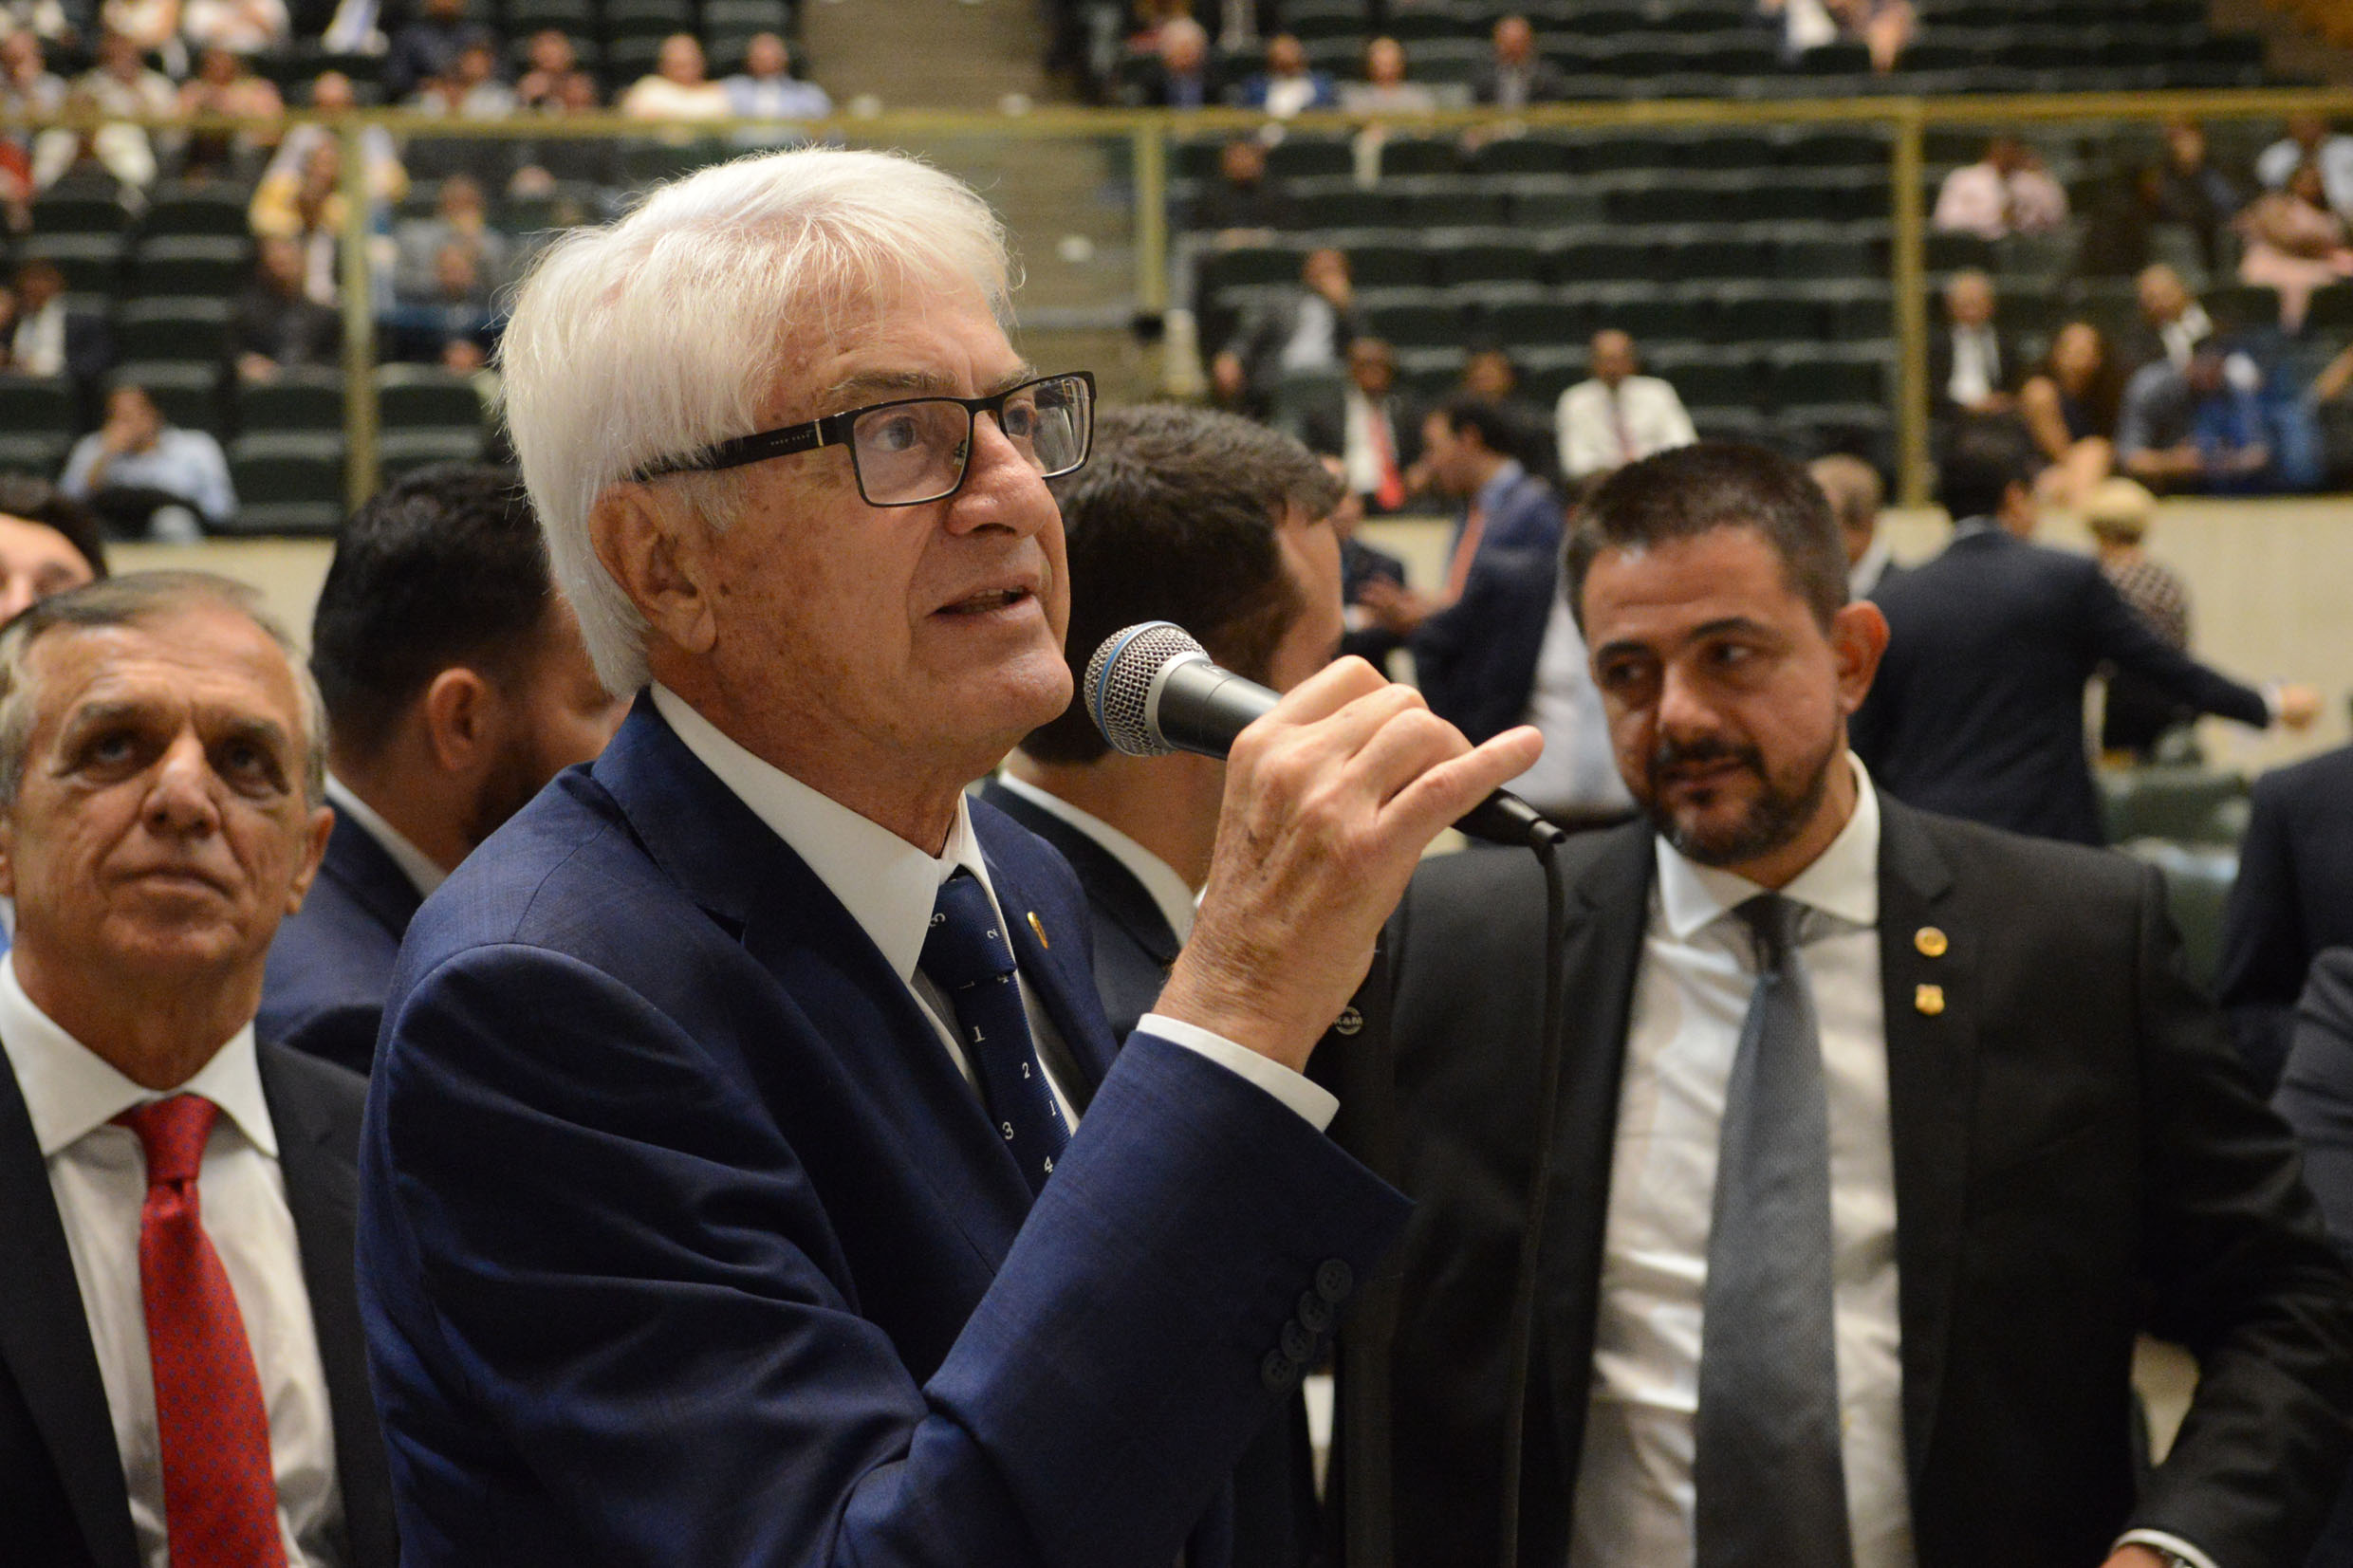 Roberto Engler <a style='float:right' href='https://www3.al.sp.gov.br/repositorio/noticia/N-03-2019/fg231592.jpg' target=_blank><img src='/_img/material-file-download-white.png' width='14px' alt='Clique para baixar a imagem'></a>